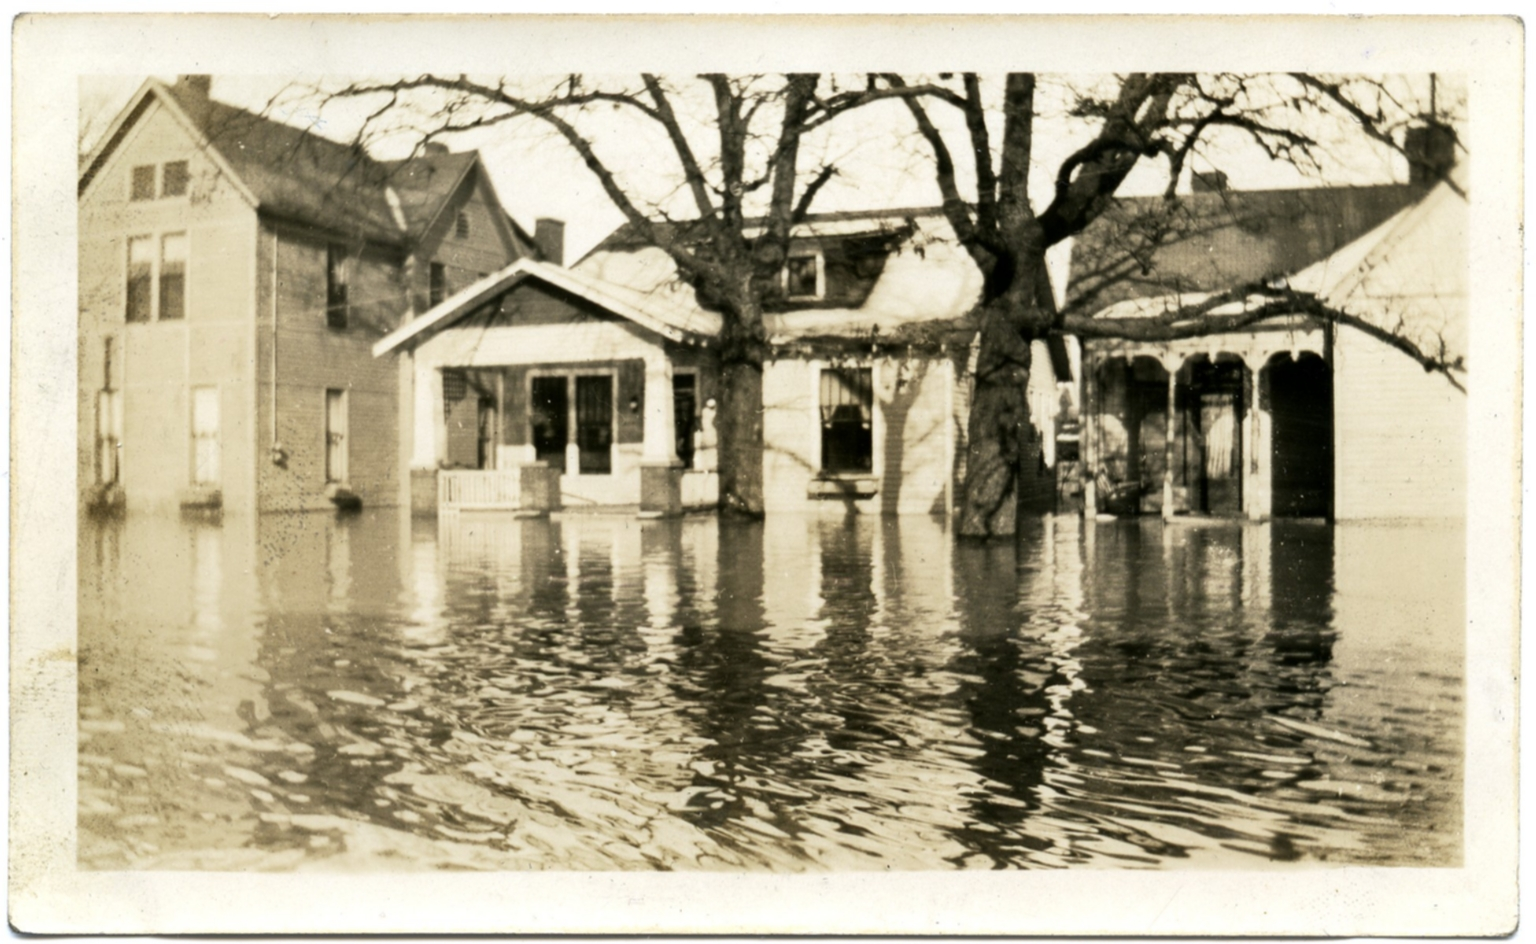 Scene of flooded street during '37 flood.